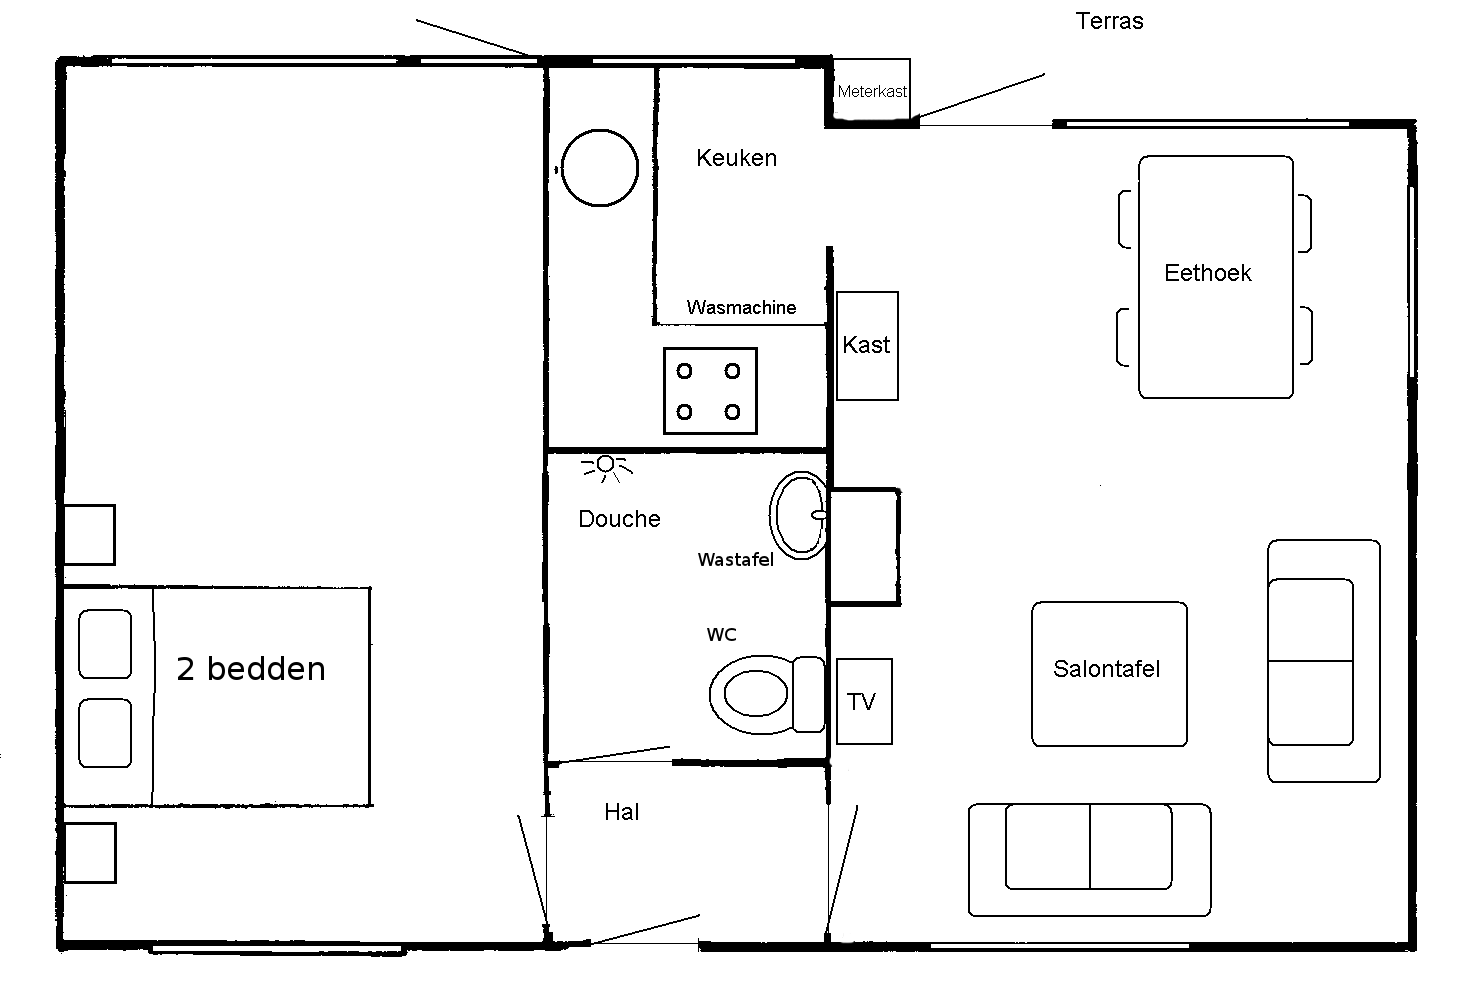 Bungalow Einfamilienhaus Zweifamilienhaus additionally Mystery Island together with Page6 together with Inhalt torre 148 in addition Friesenhaus. on bunglow